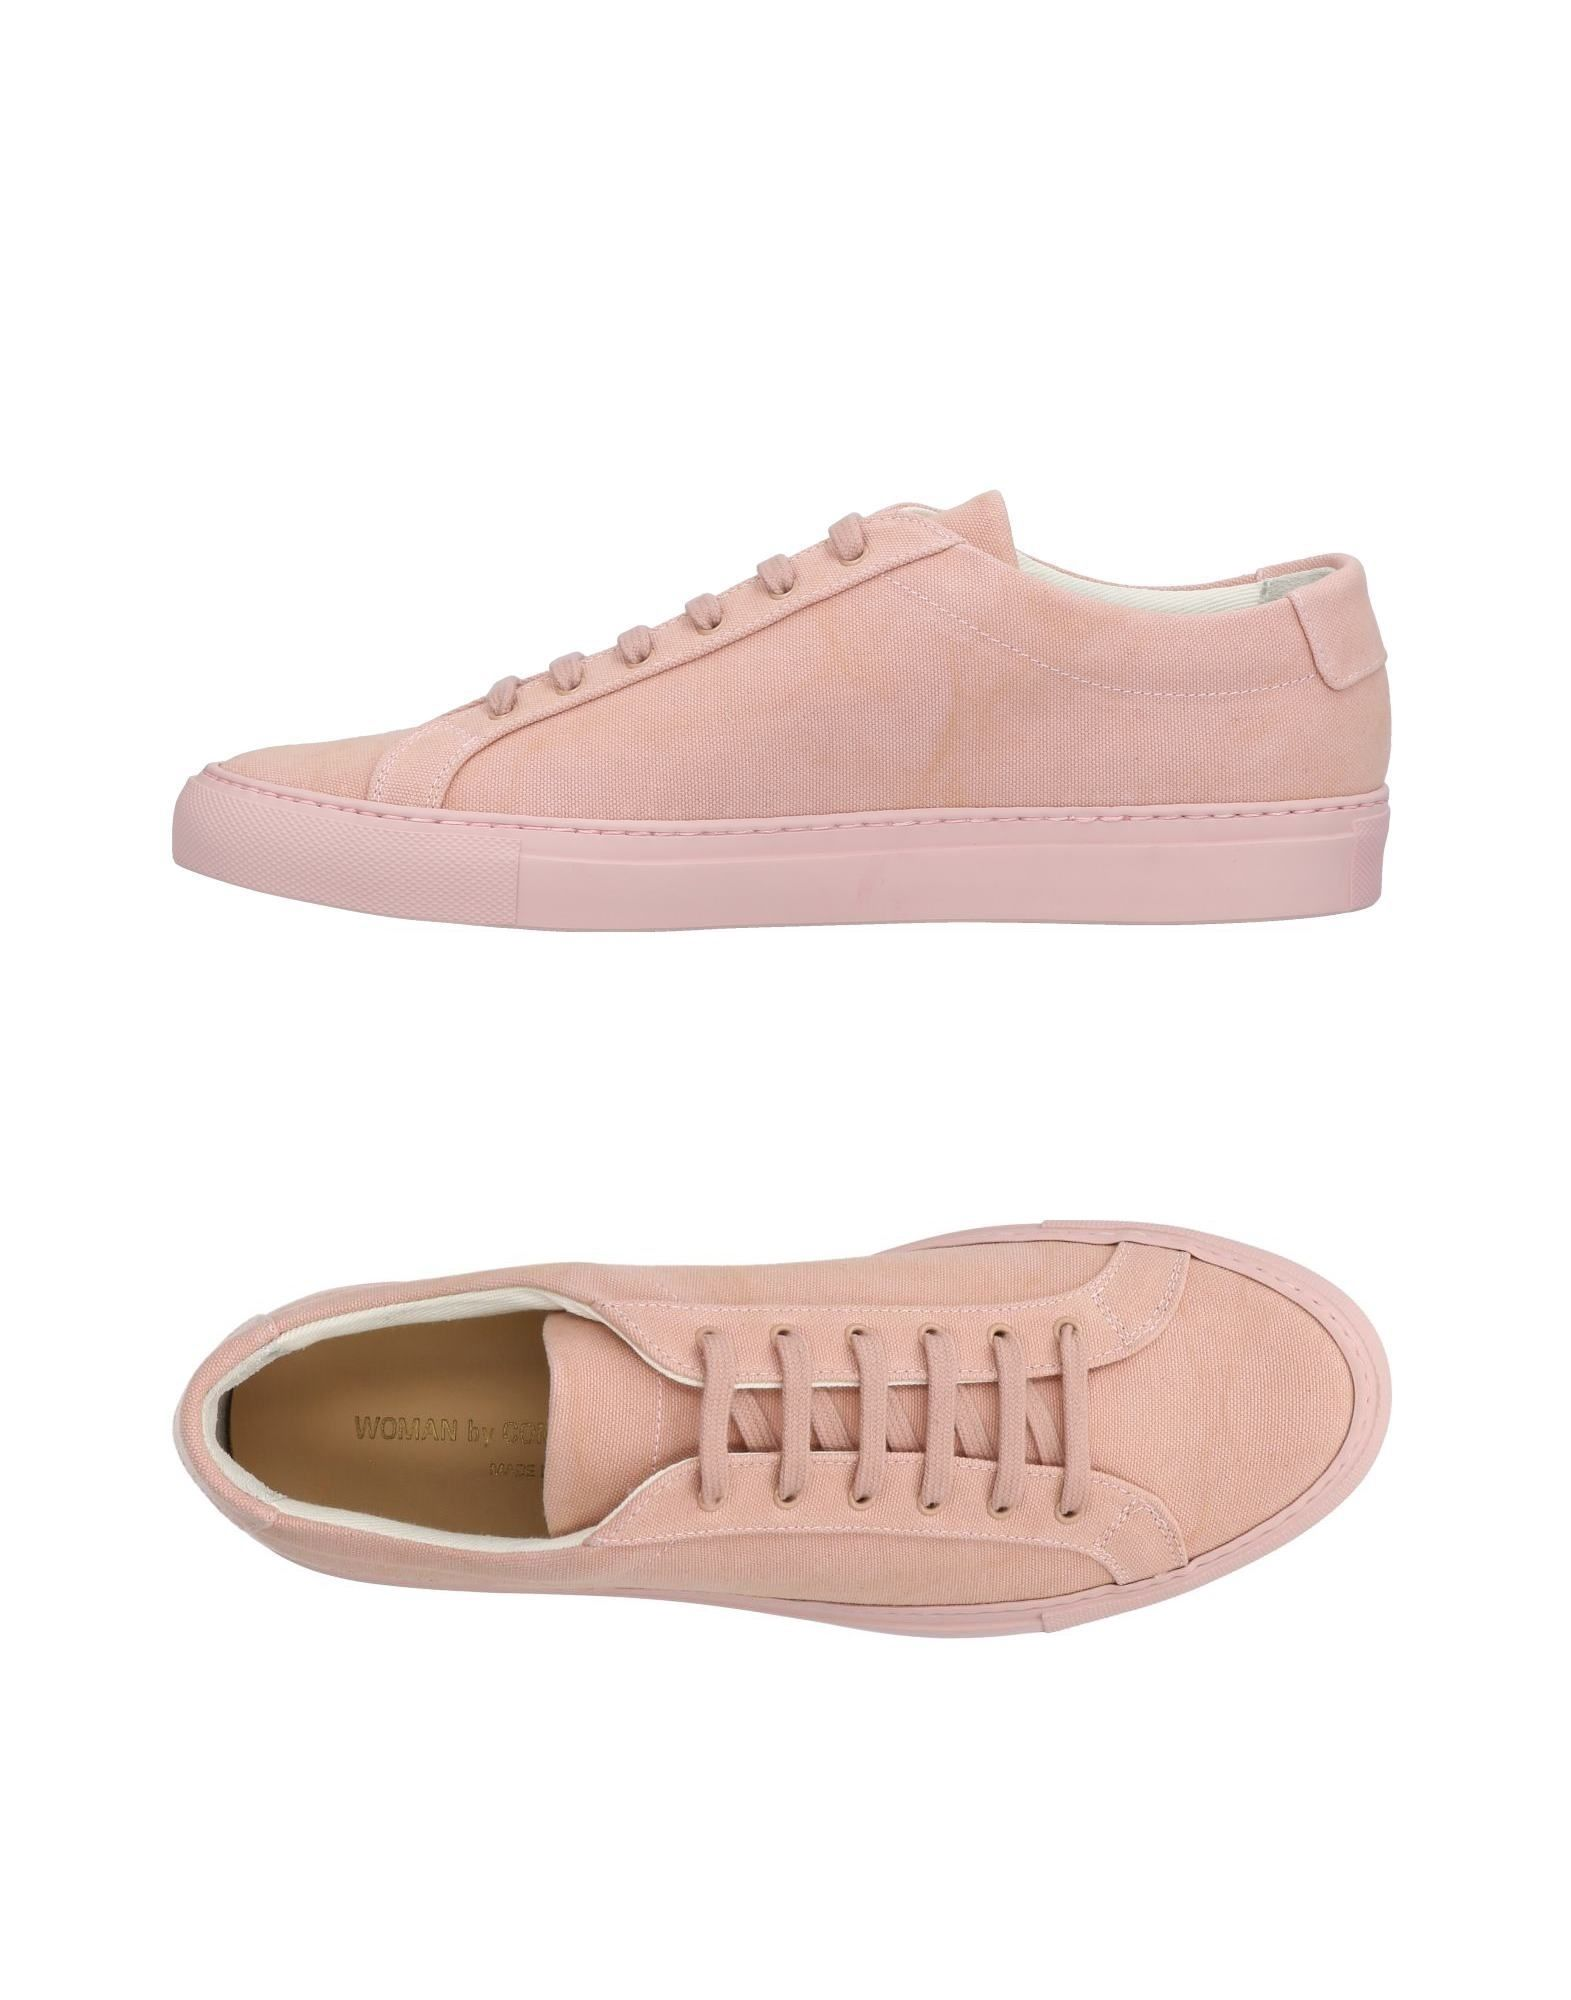 WOMAN by COMMON PROJECTS Низкие кеды и кроссовки botnet detection by monitoring common network behaviors